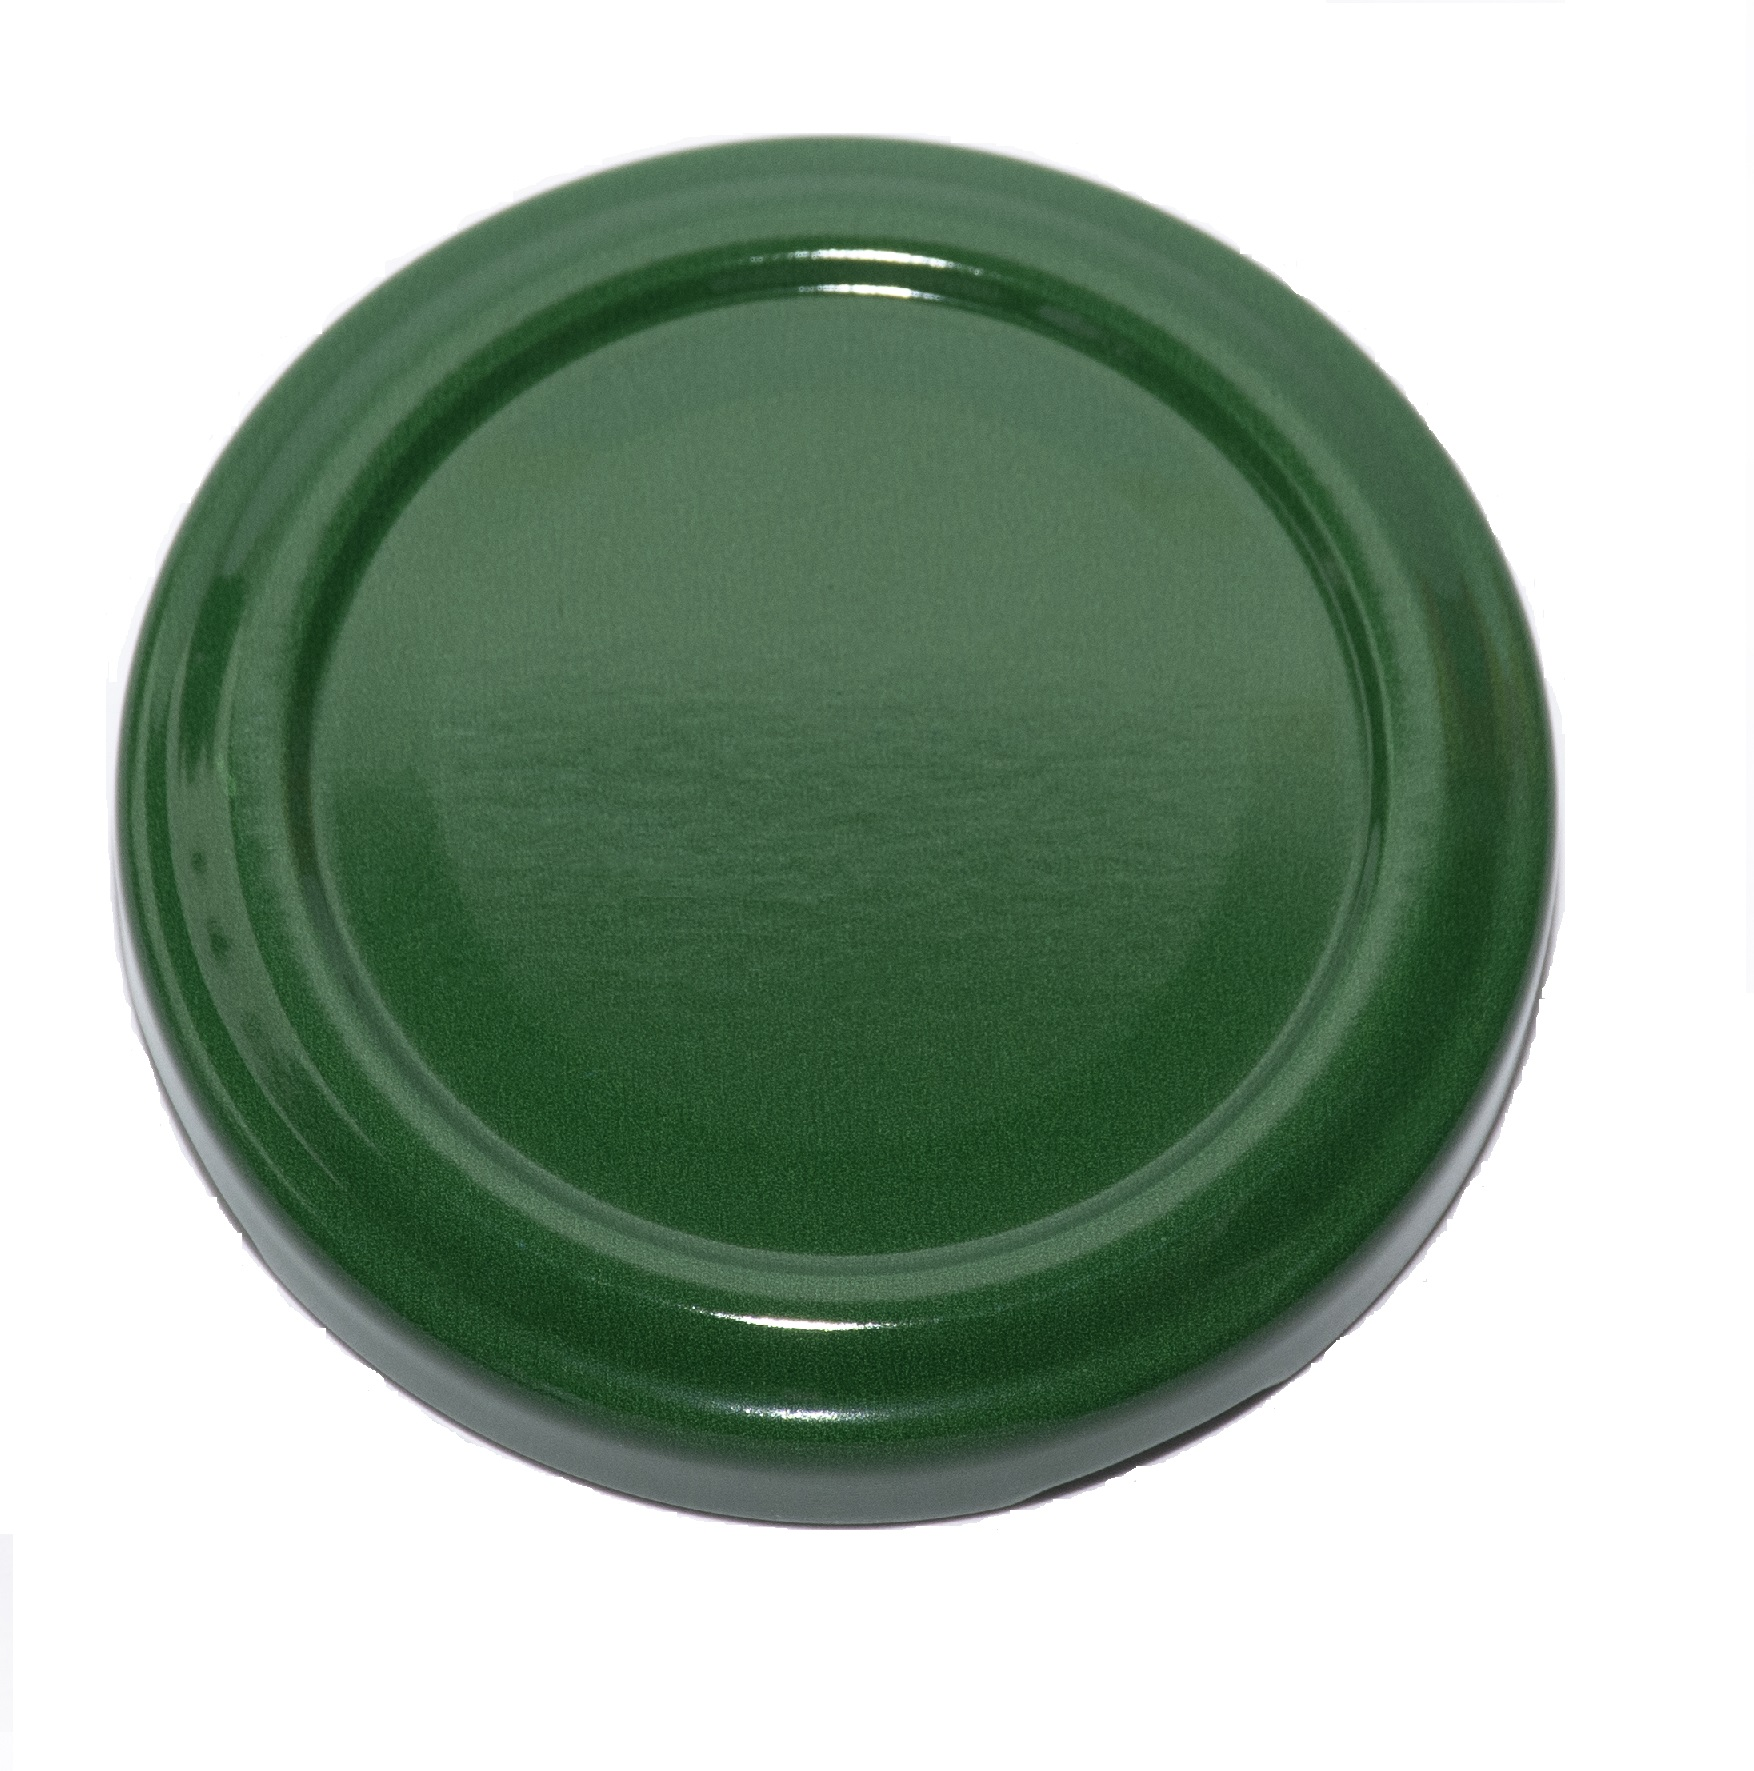 TAPA METÁLICA 53 mm TO VERDE